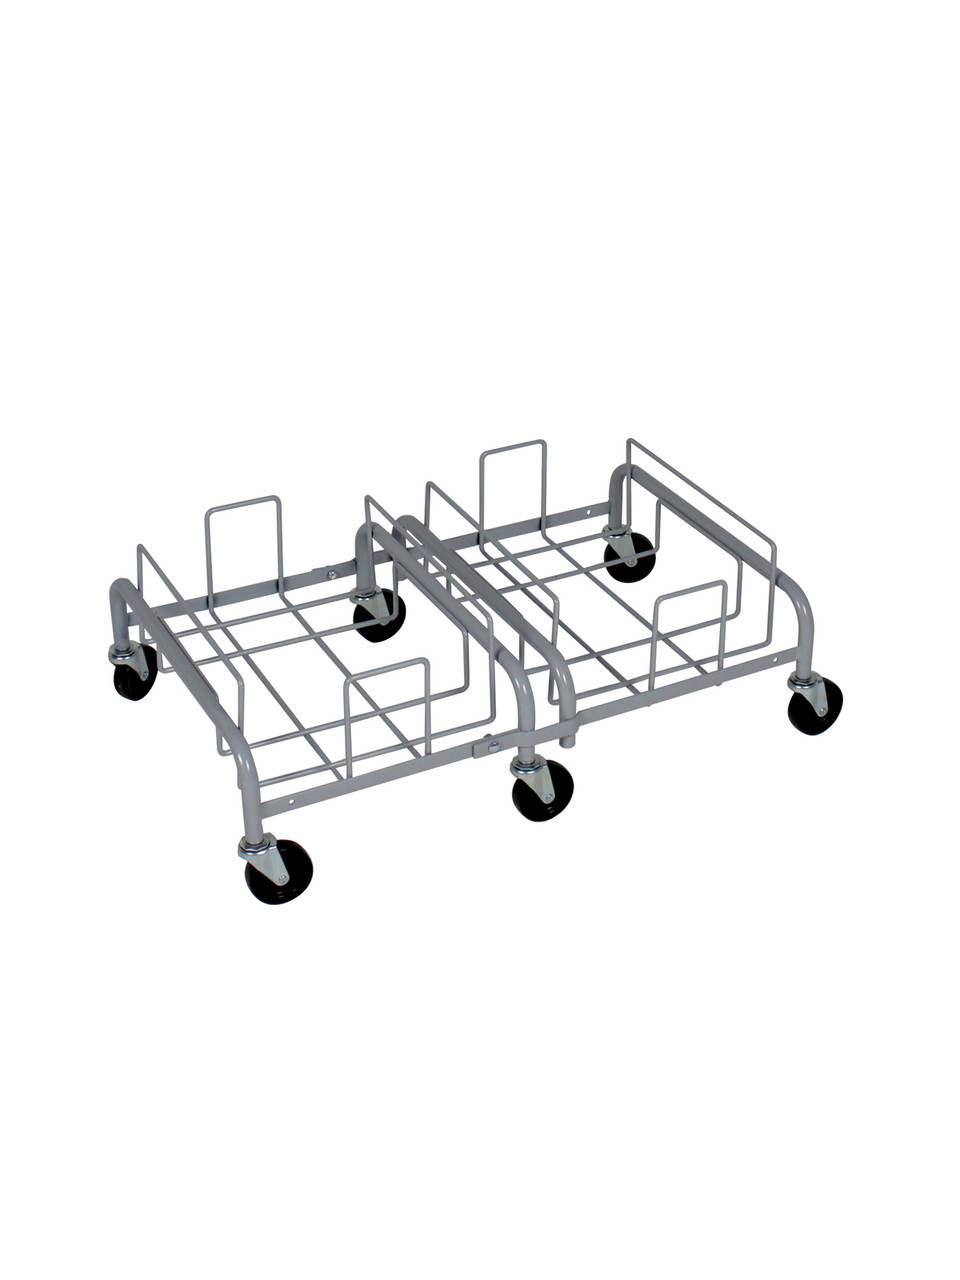 Waste Watcher Extra Large Double Wheel Dolly WWXLD2-44